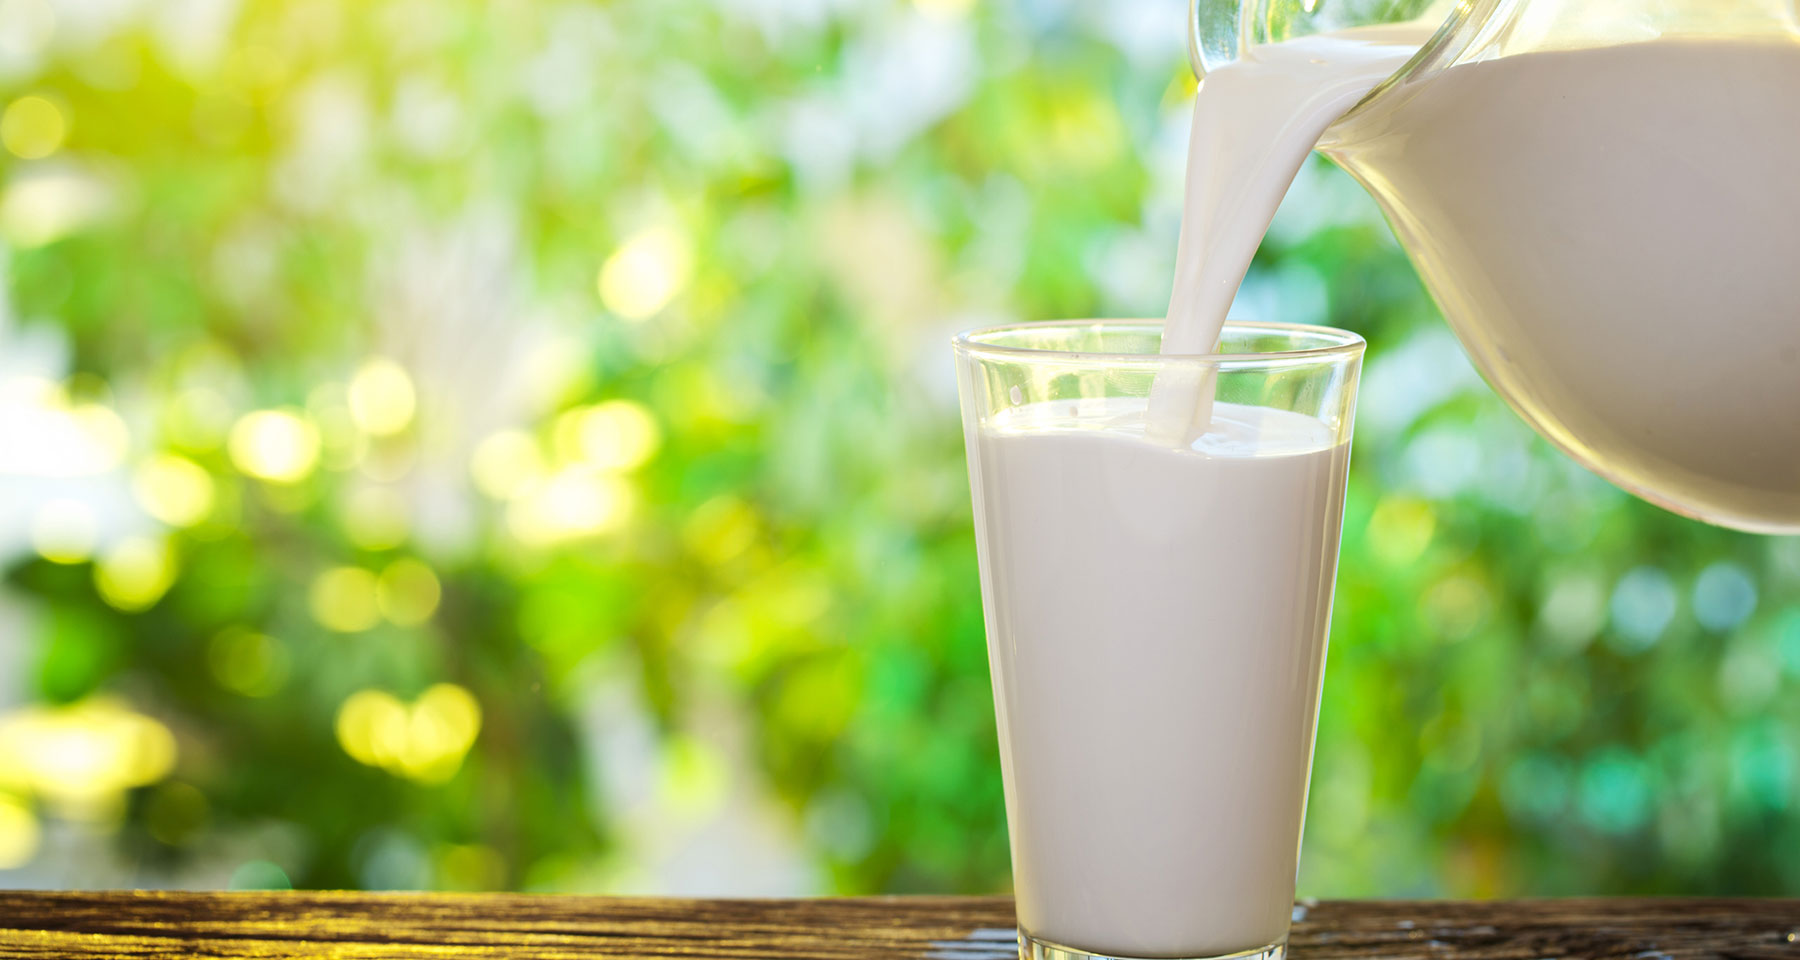 Raw Milk May Do More Harm Than Good, Study Finds